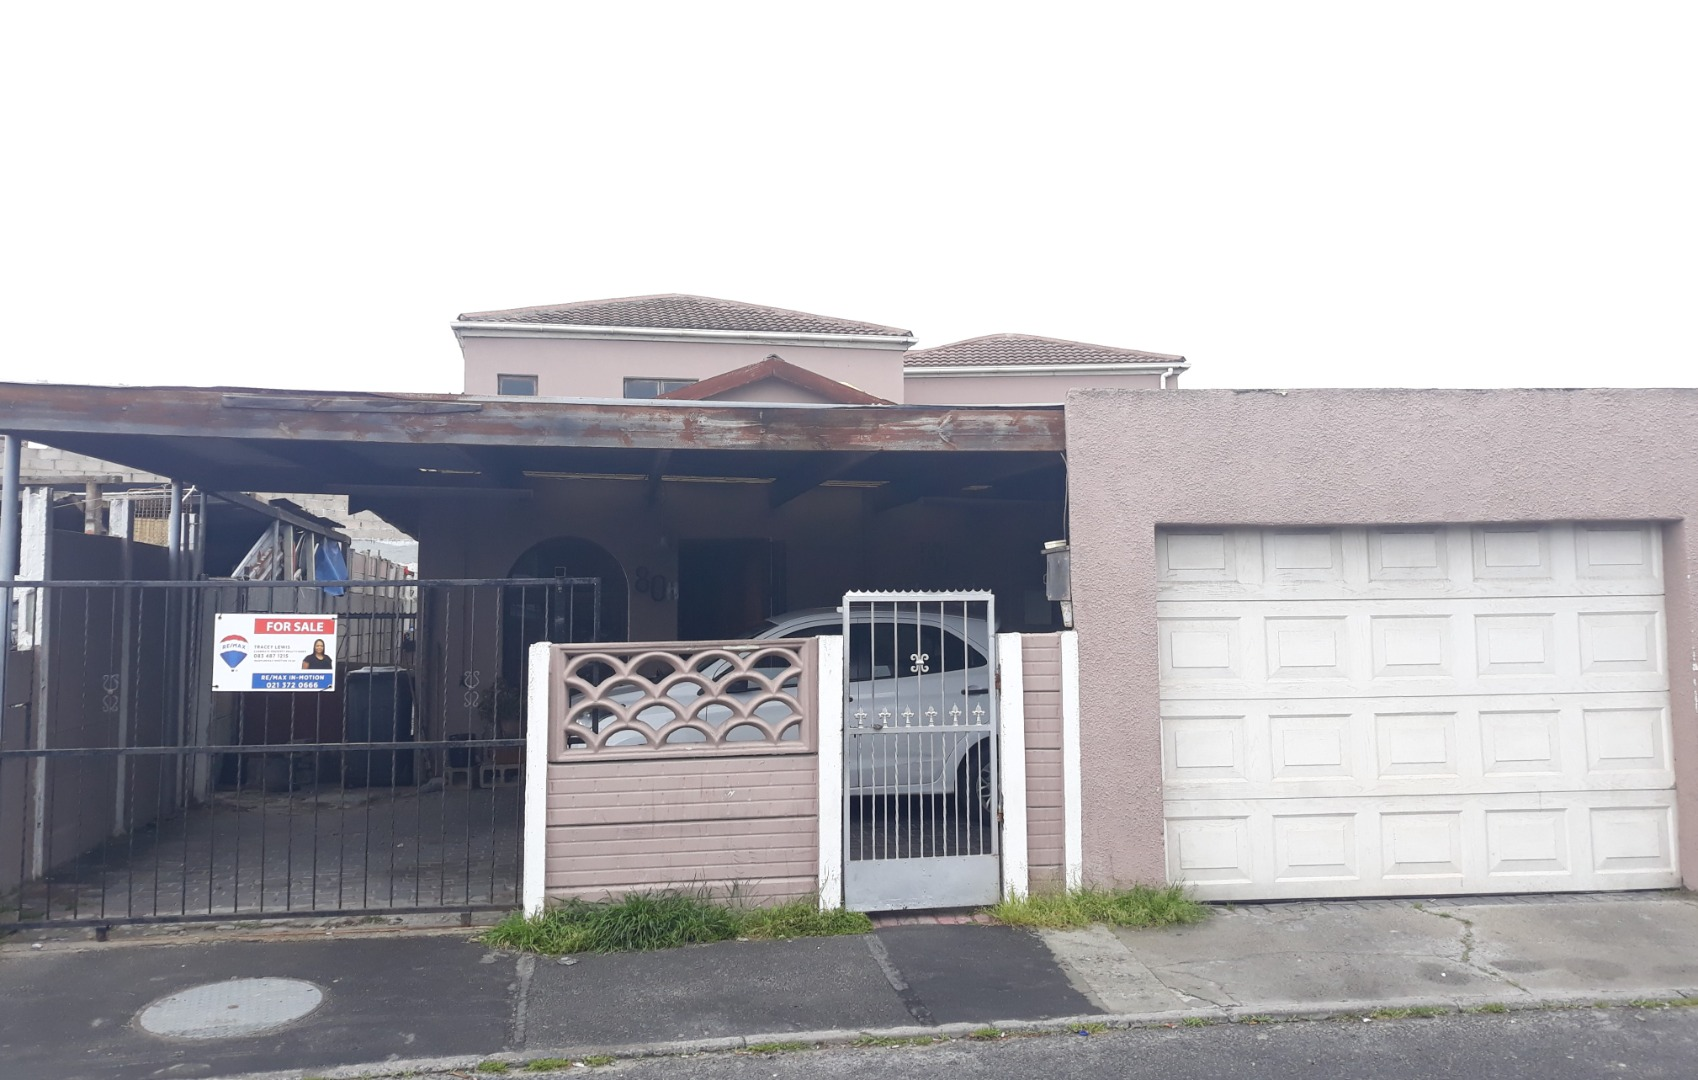 6 Bedroom House For Sale in Morgenster